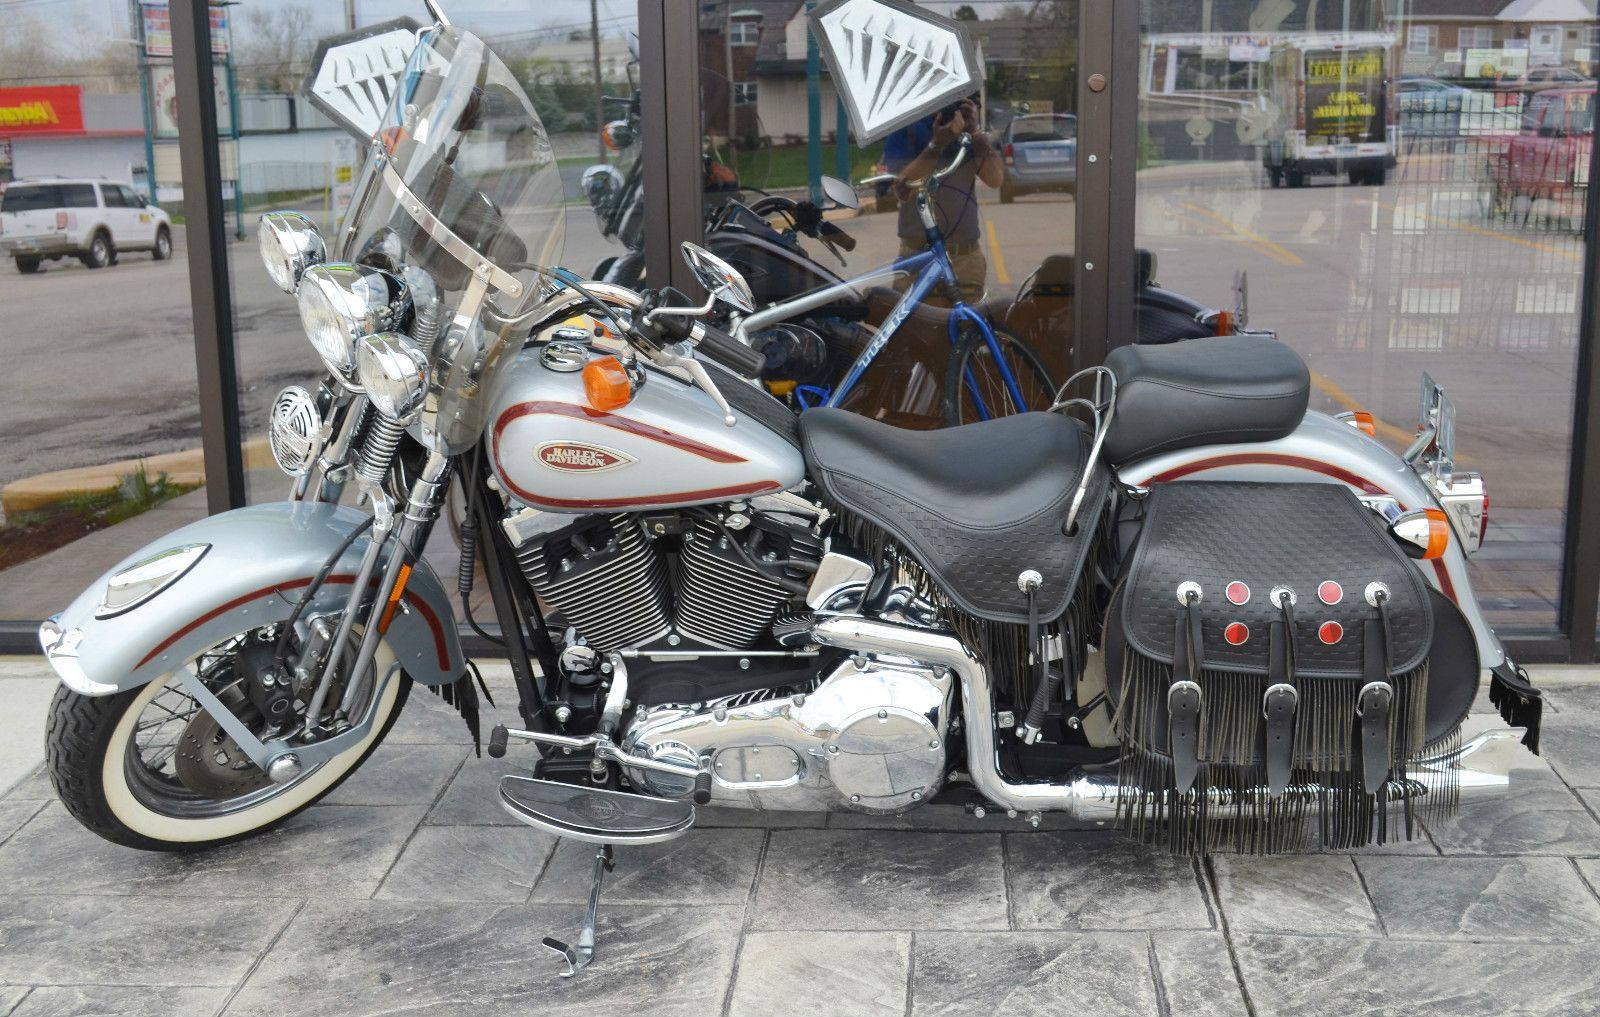 Harley Davidson Softail 2000 Harley Heritage Springer Soft Tail With Lmt Ed Diamond Ice Paint [ 1017 x 1600 Pixel ]